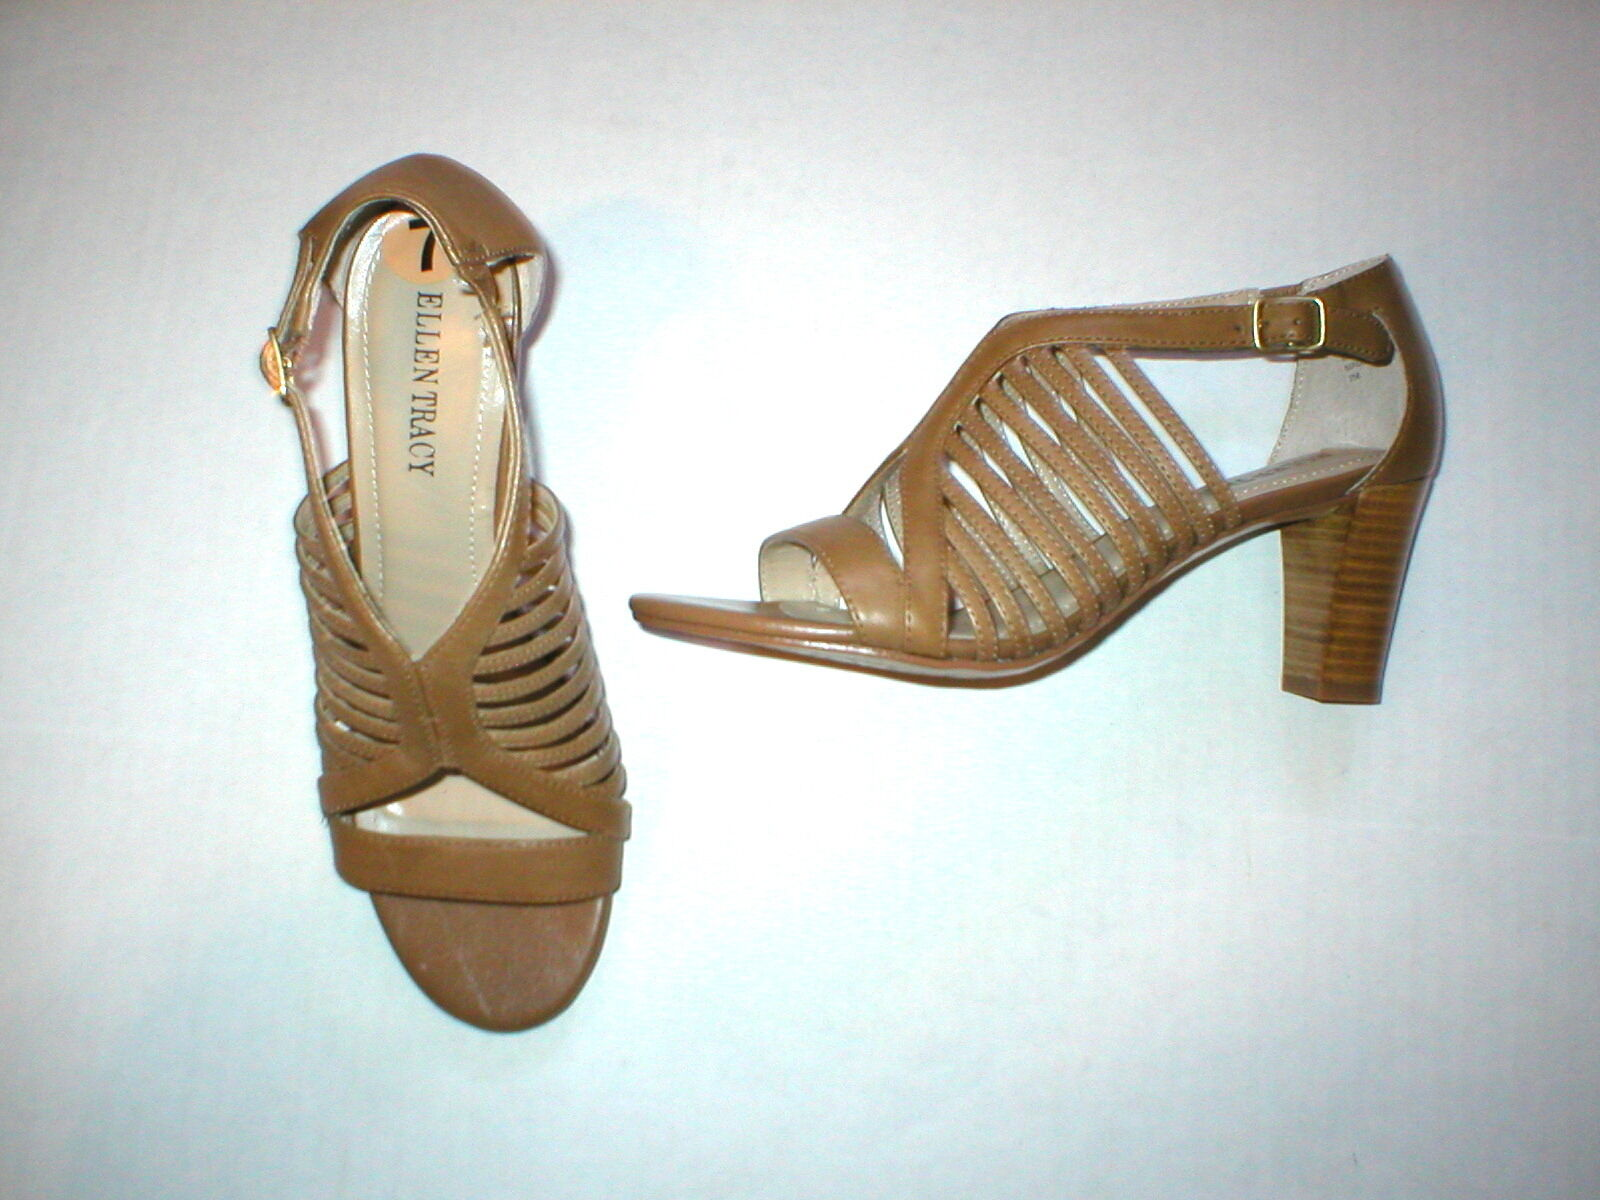 New Ellen Tracy Sandal Heels Shoes Leather Brown Leather Shoes 9.5 Open Straps Office Date 3703fb